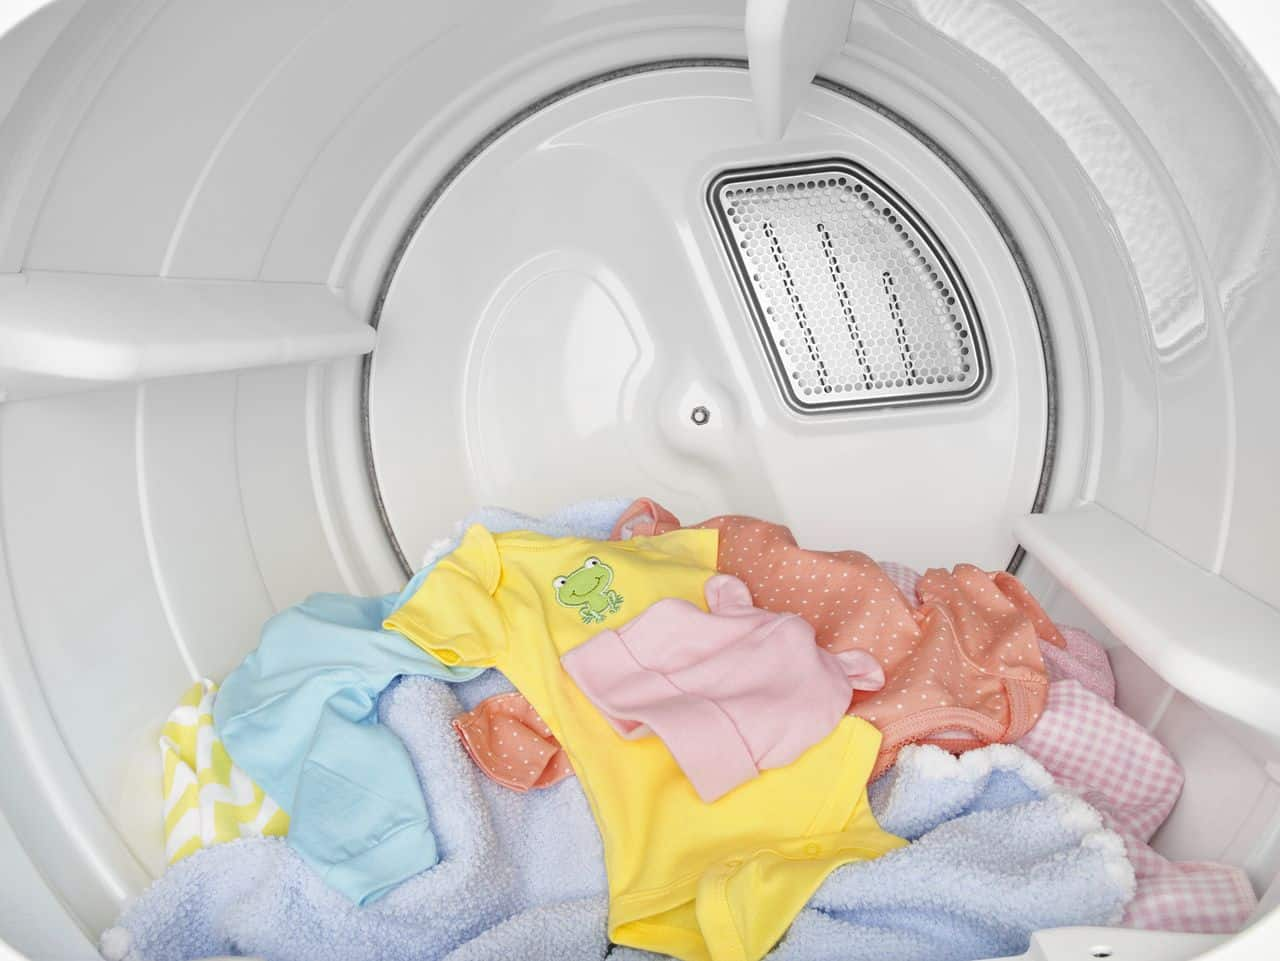 How To Make Your Clothes Smell Good In The Dryer how to eliminate musky odors from a clothes dryer | fred's